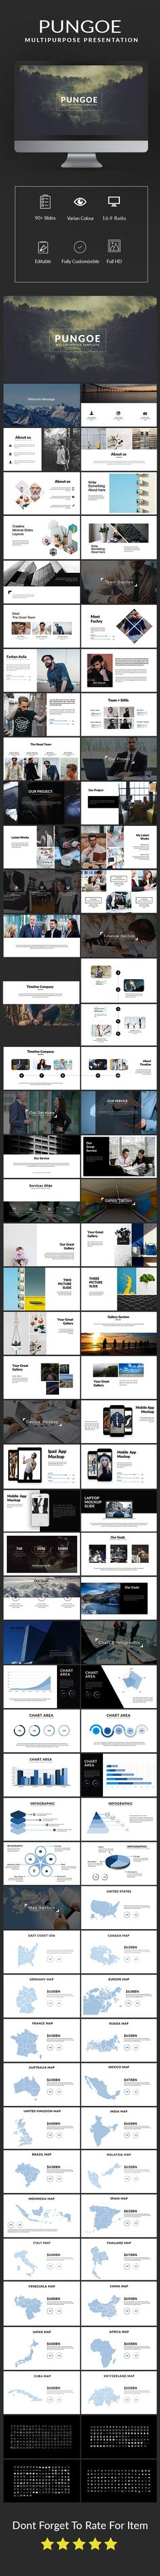 Pungoe Multipurpose Template - #PowerPoint #Templates Presentation Templates Download here: https://graphicriver.net/item/pungoe-multipurpose-template/19281615?ref=alena994